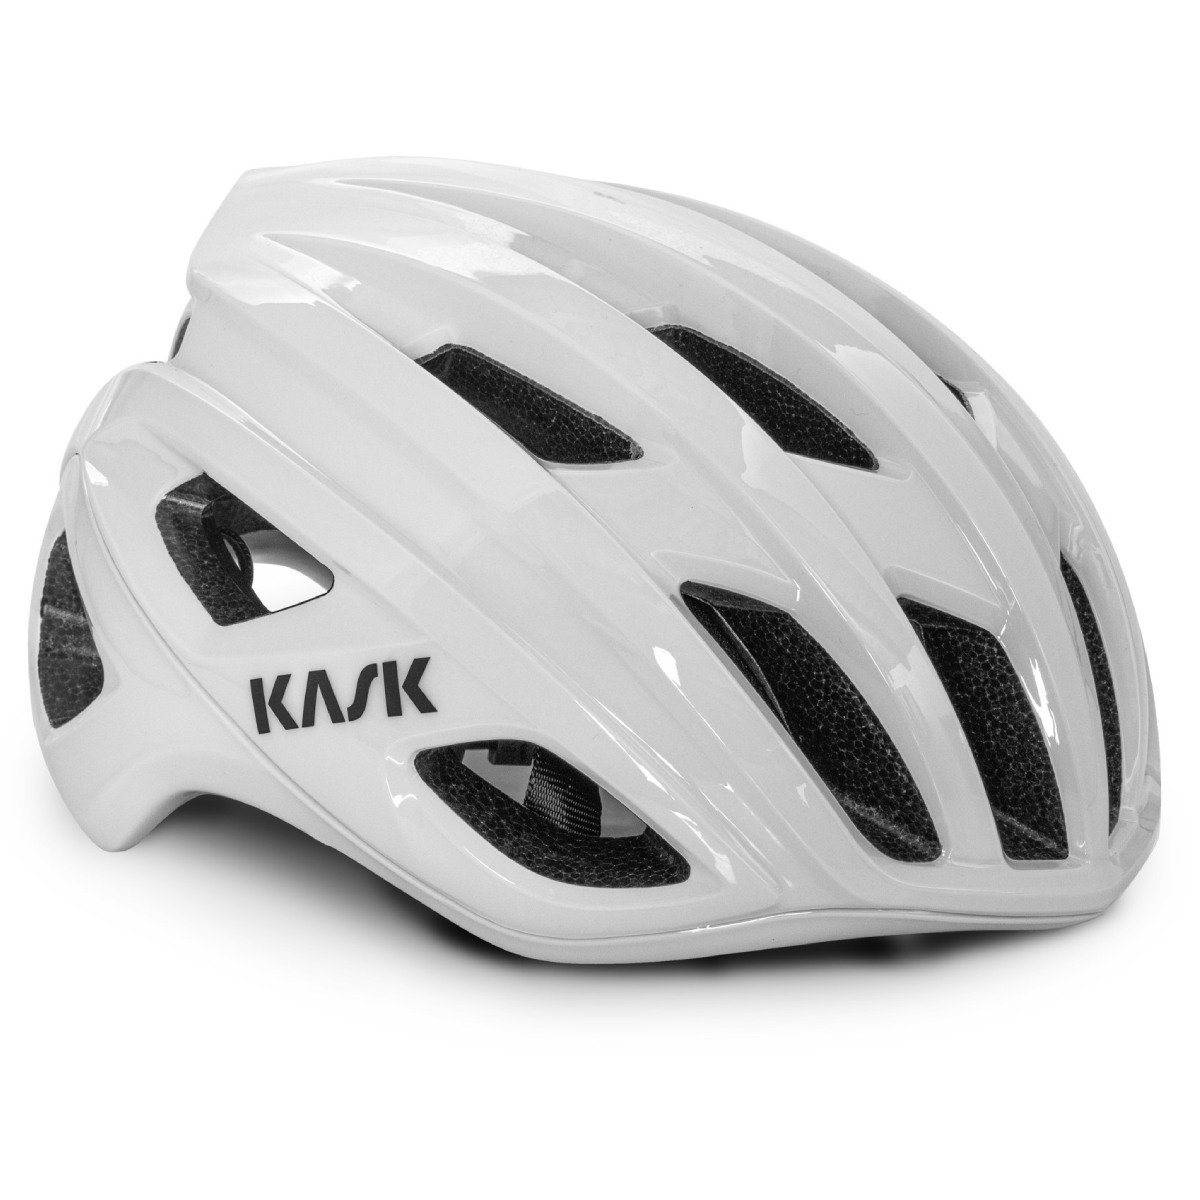 CASQUE KASK MOJITO 3 BLANC LARGE